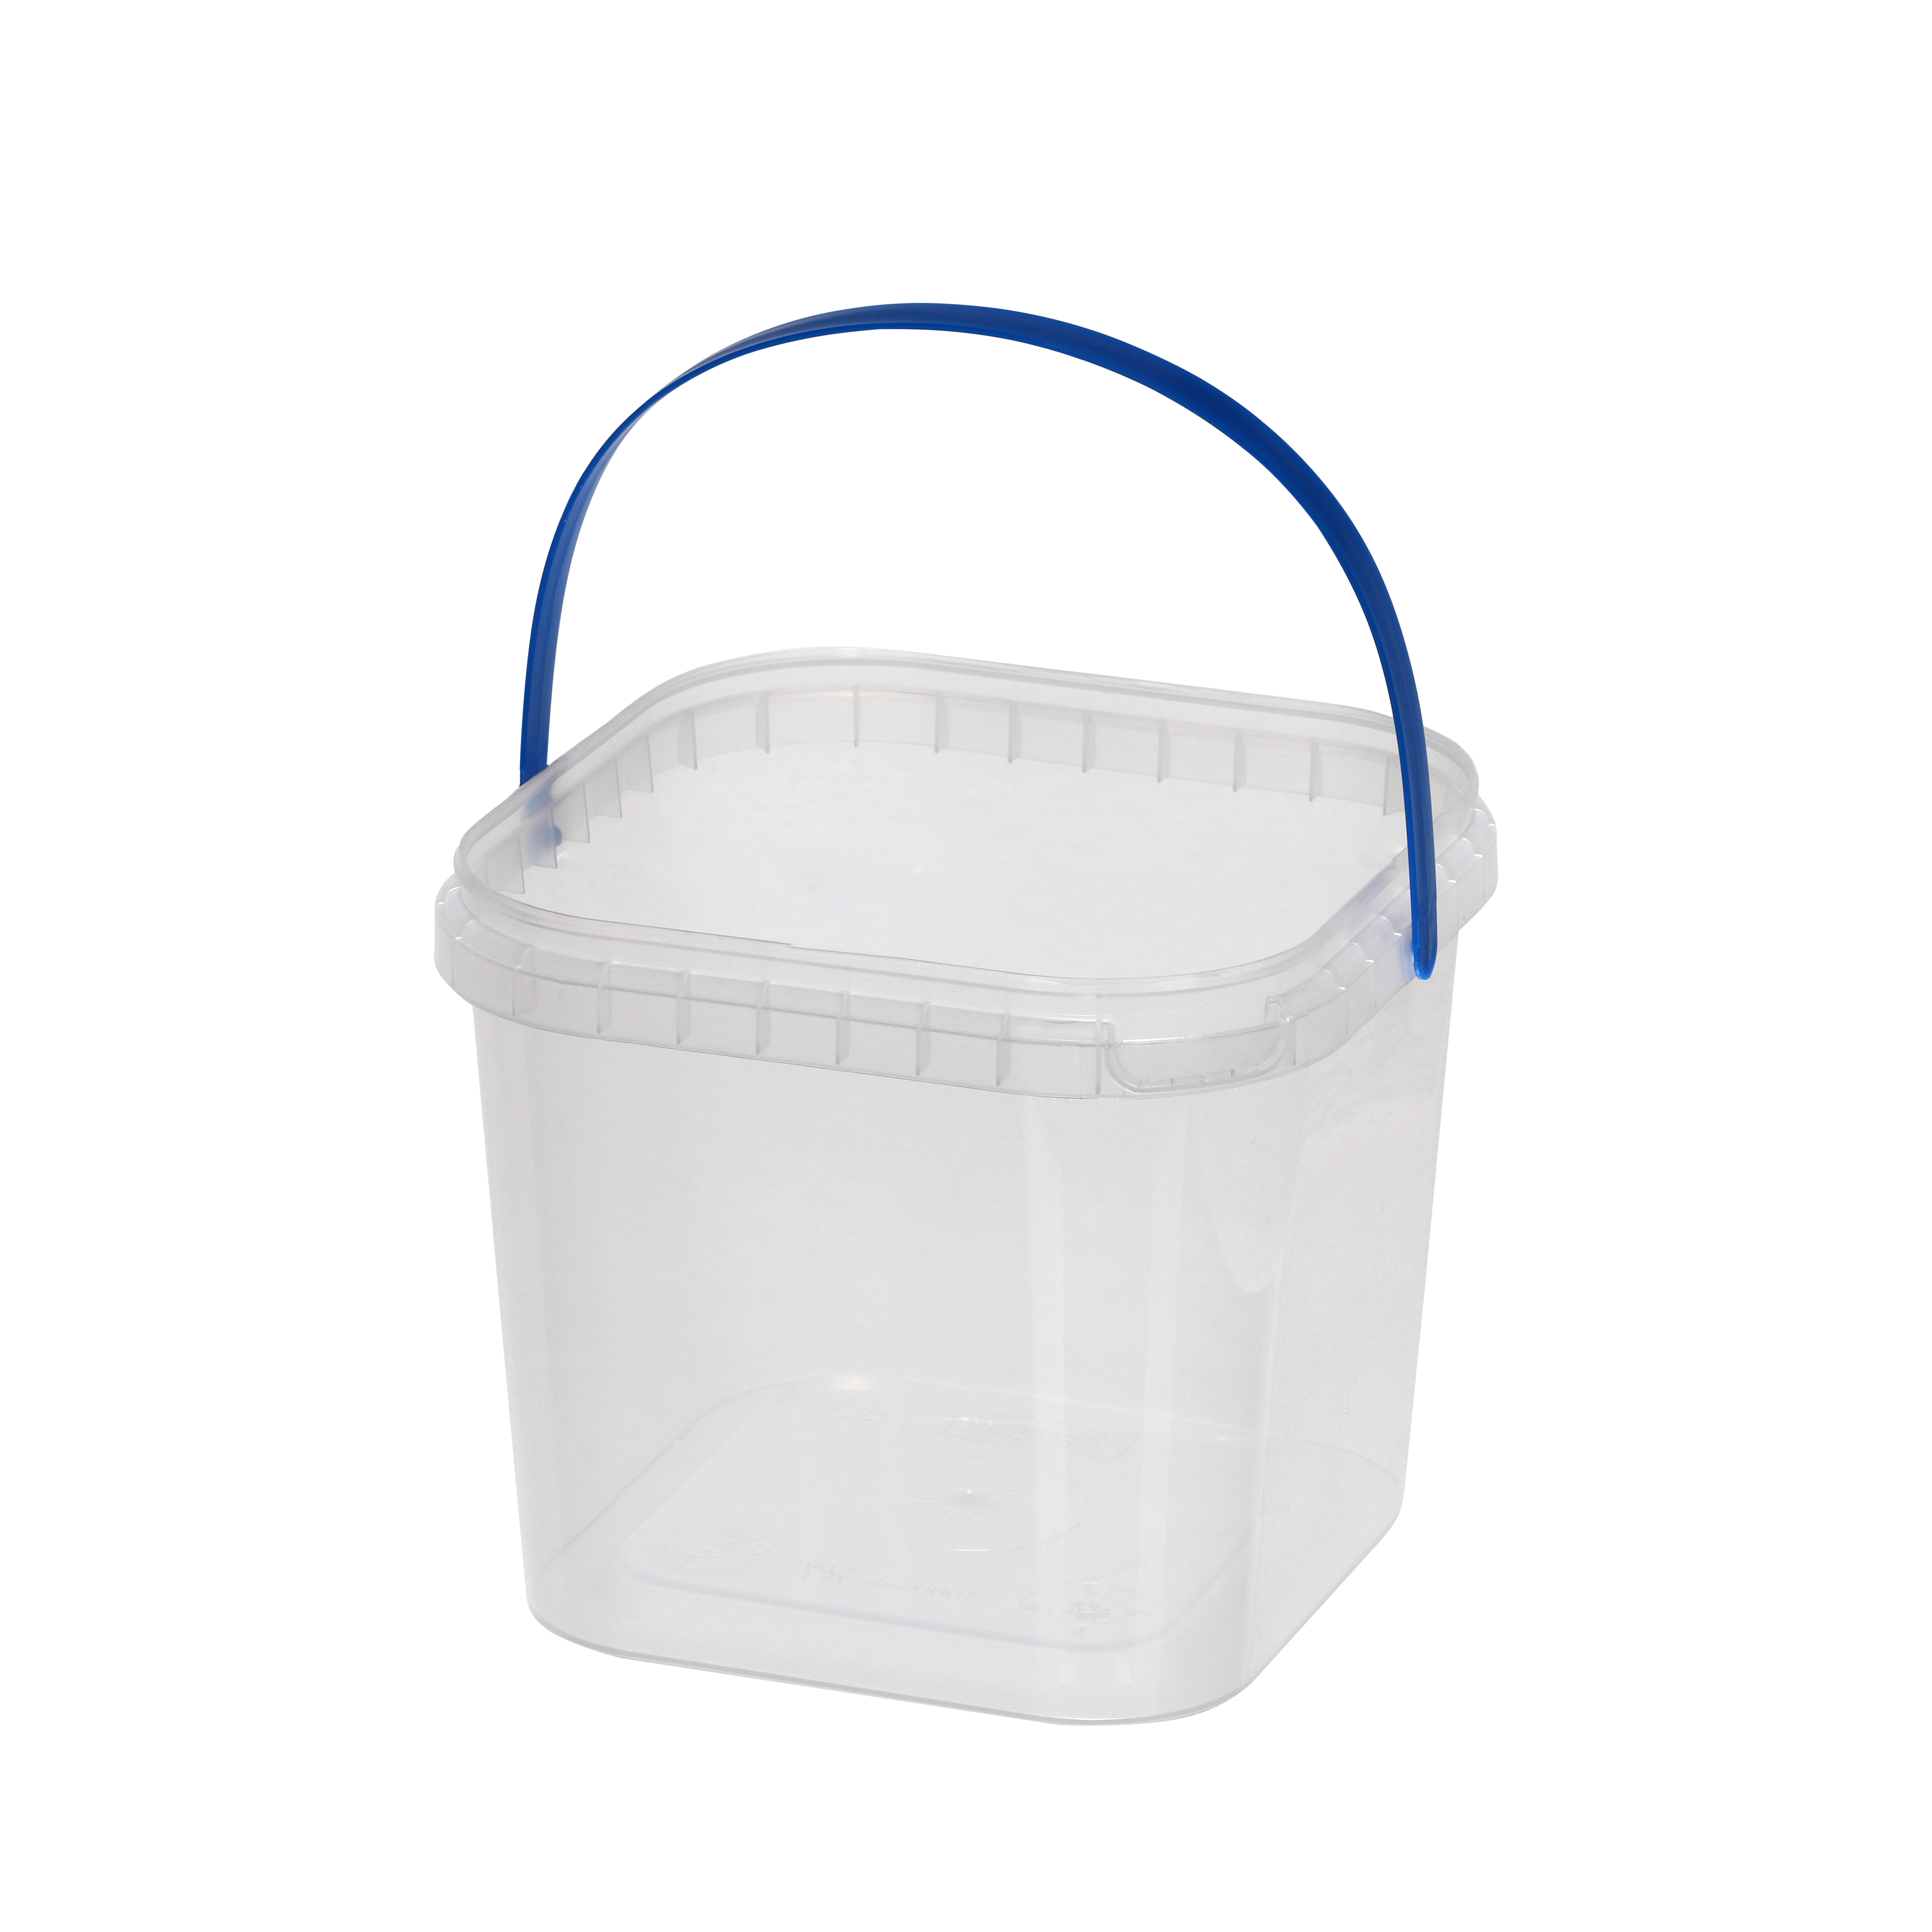 Food containers with Tamper evident security safe your food and easy to open and use.  Food Container 1 litre